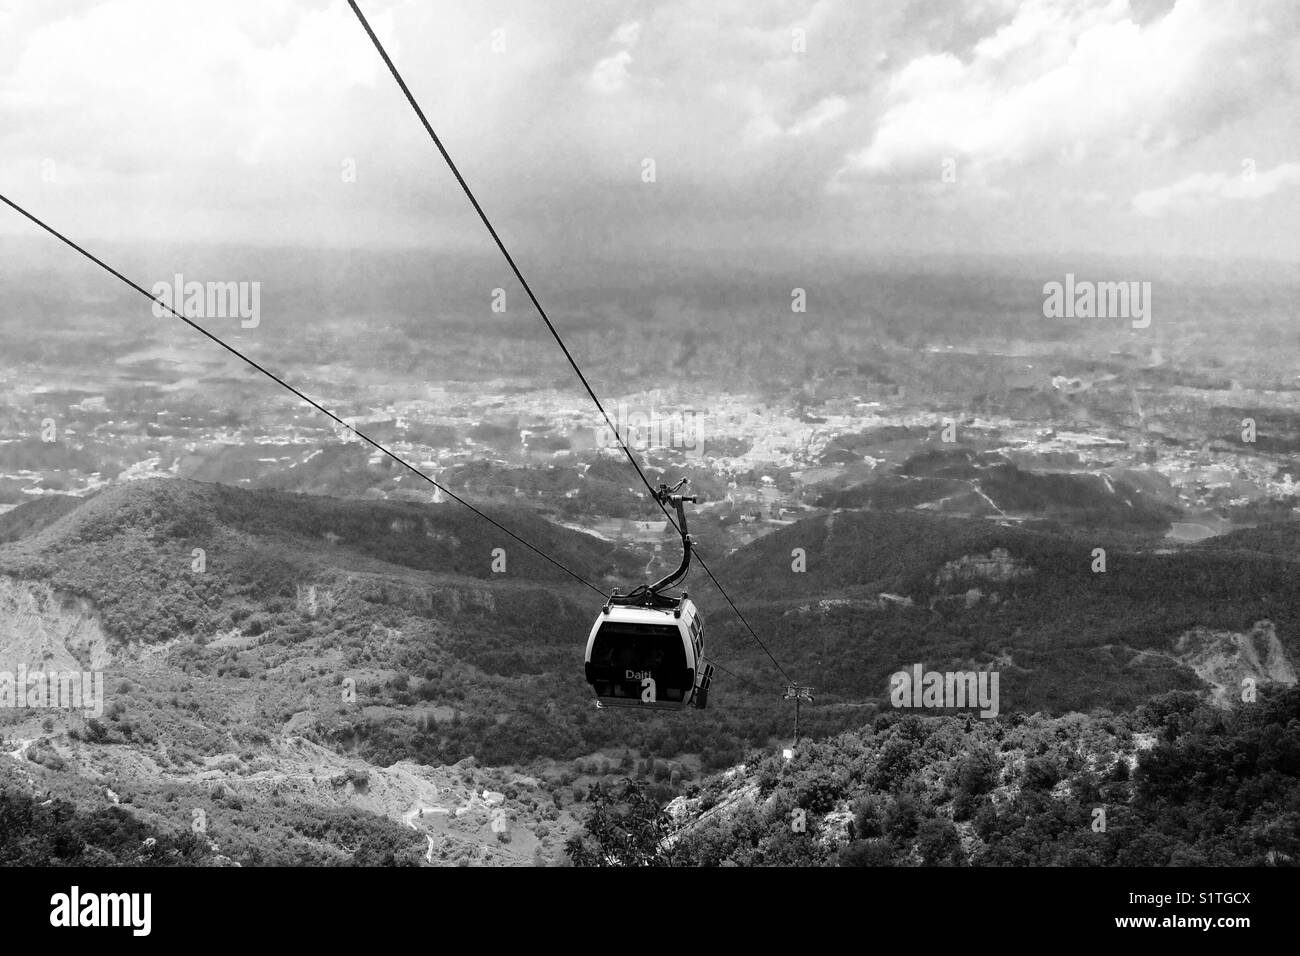 Cable car - Stock Image